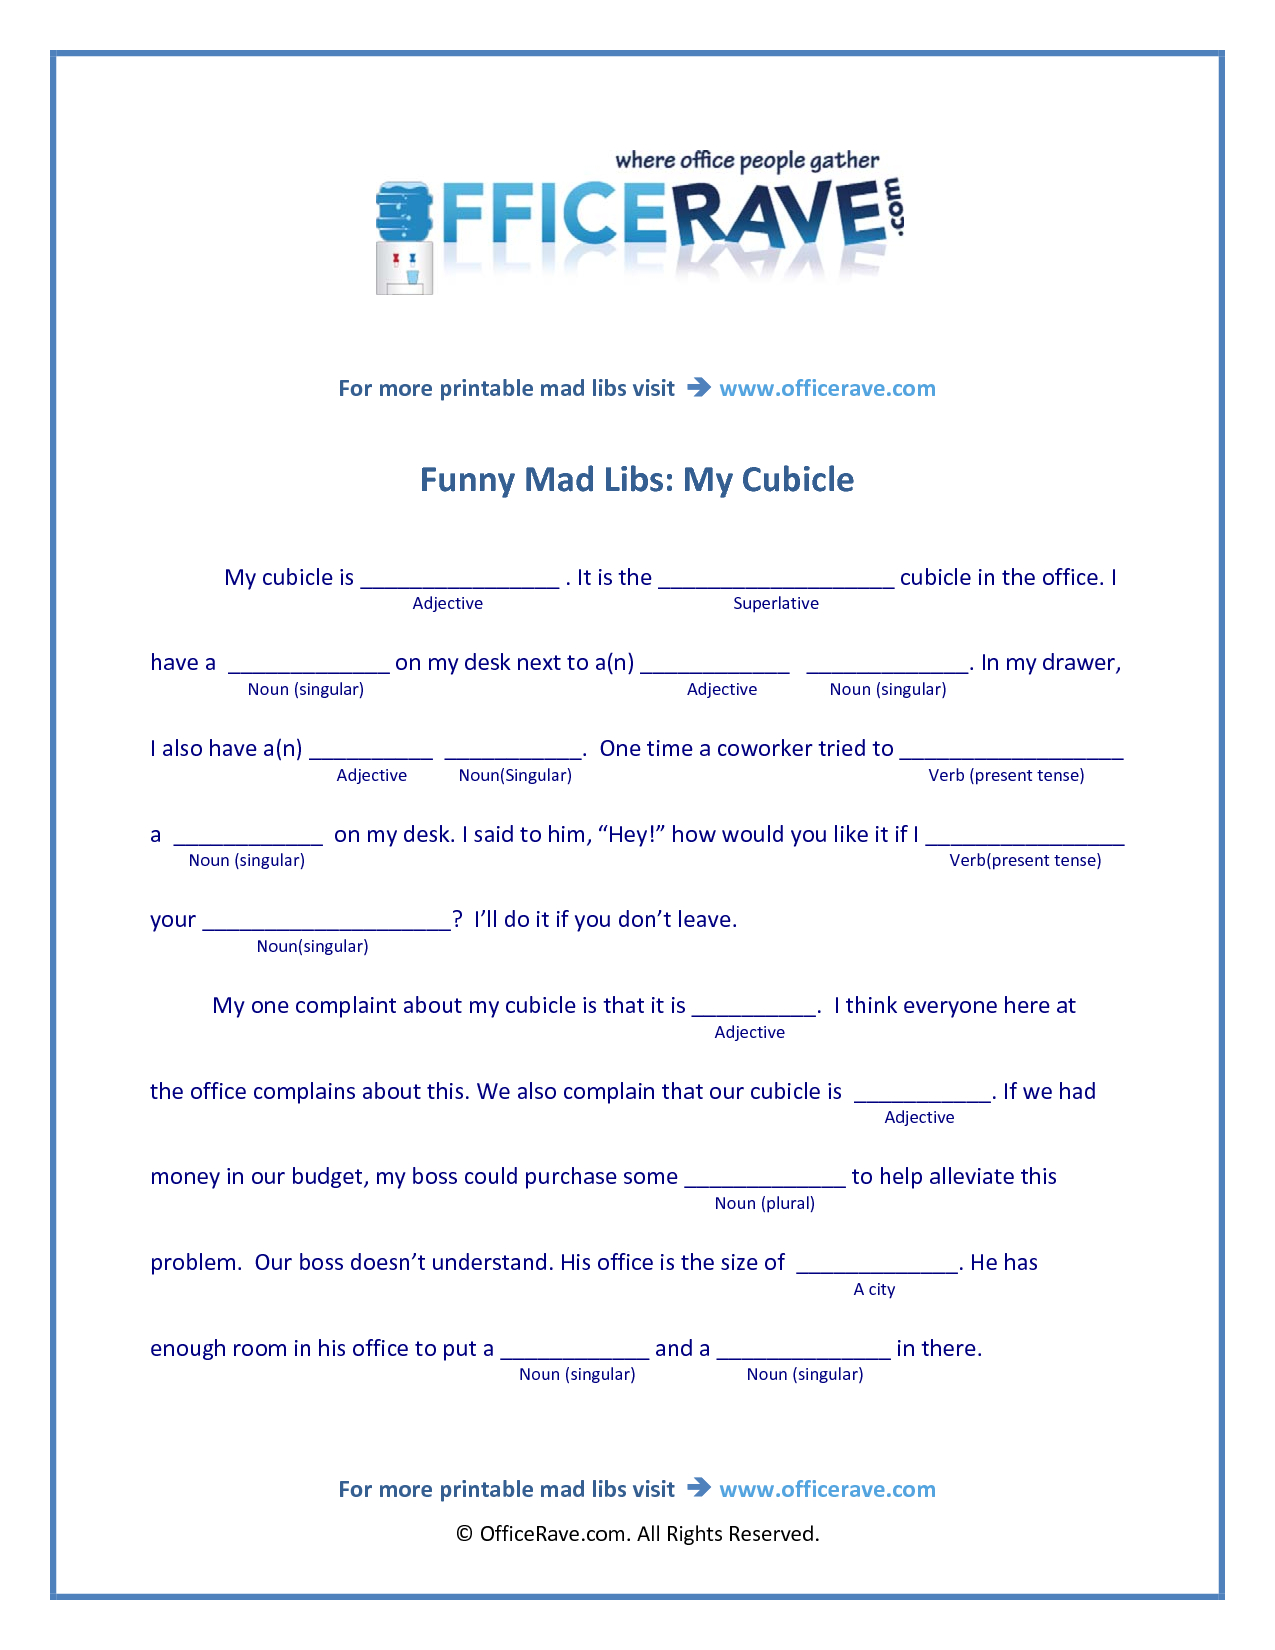 Funny Mad Libs Printable Worksheets